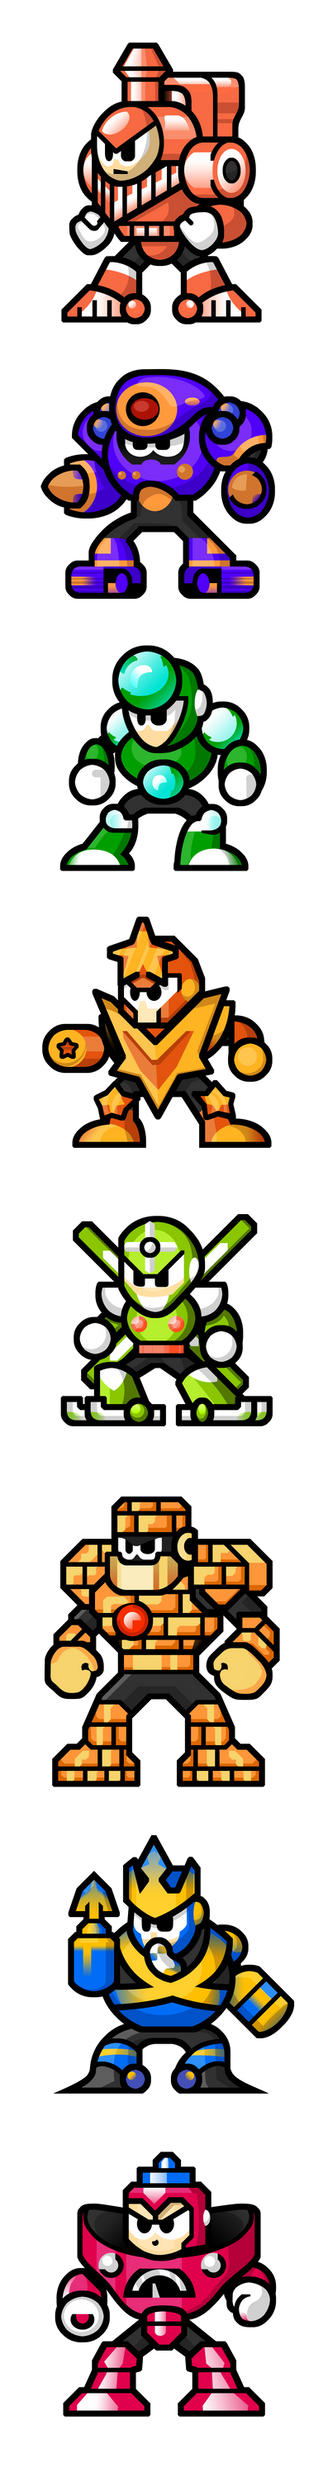 MegaMan 'Sprites'-Bosses of 5 by WaneBlade